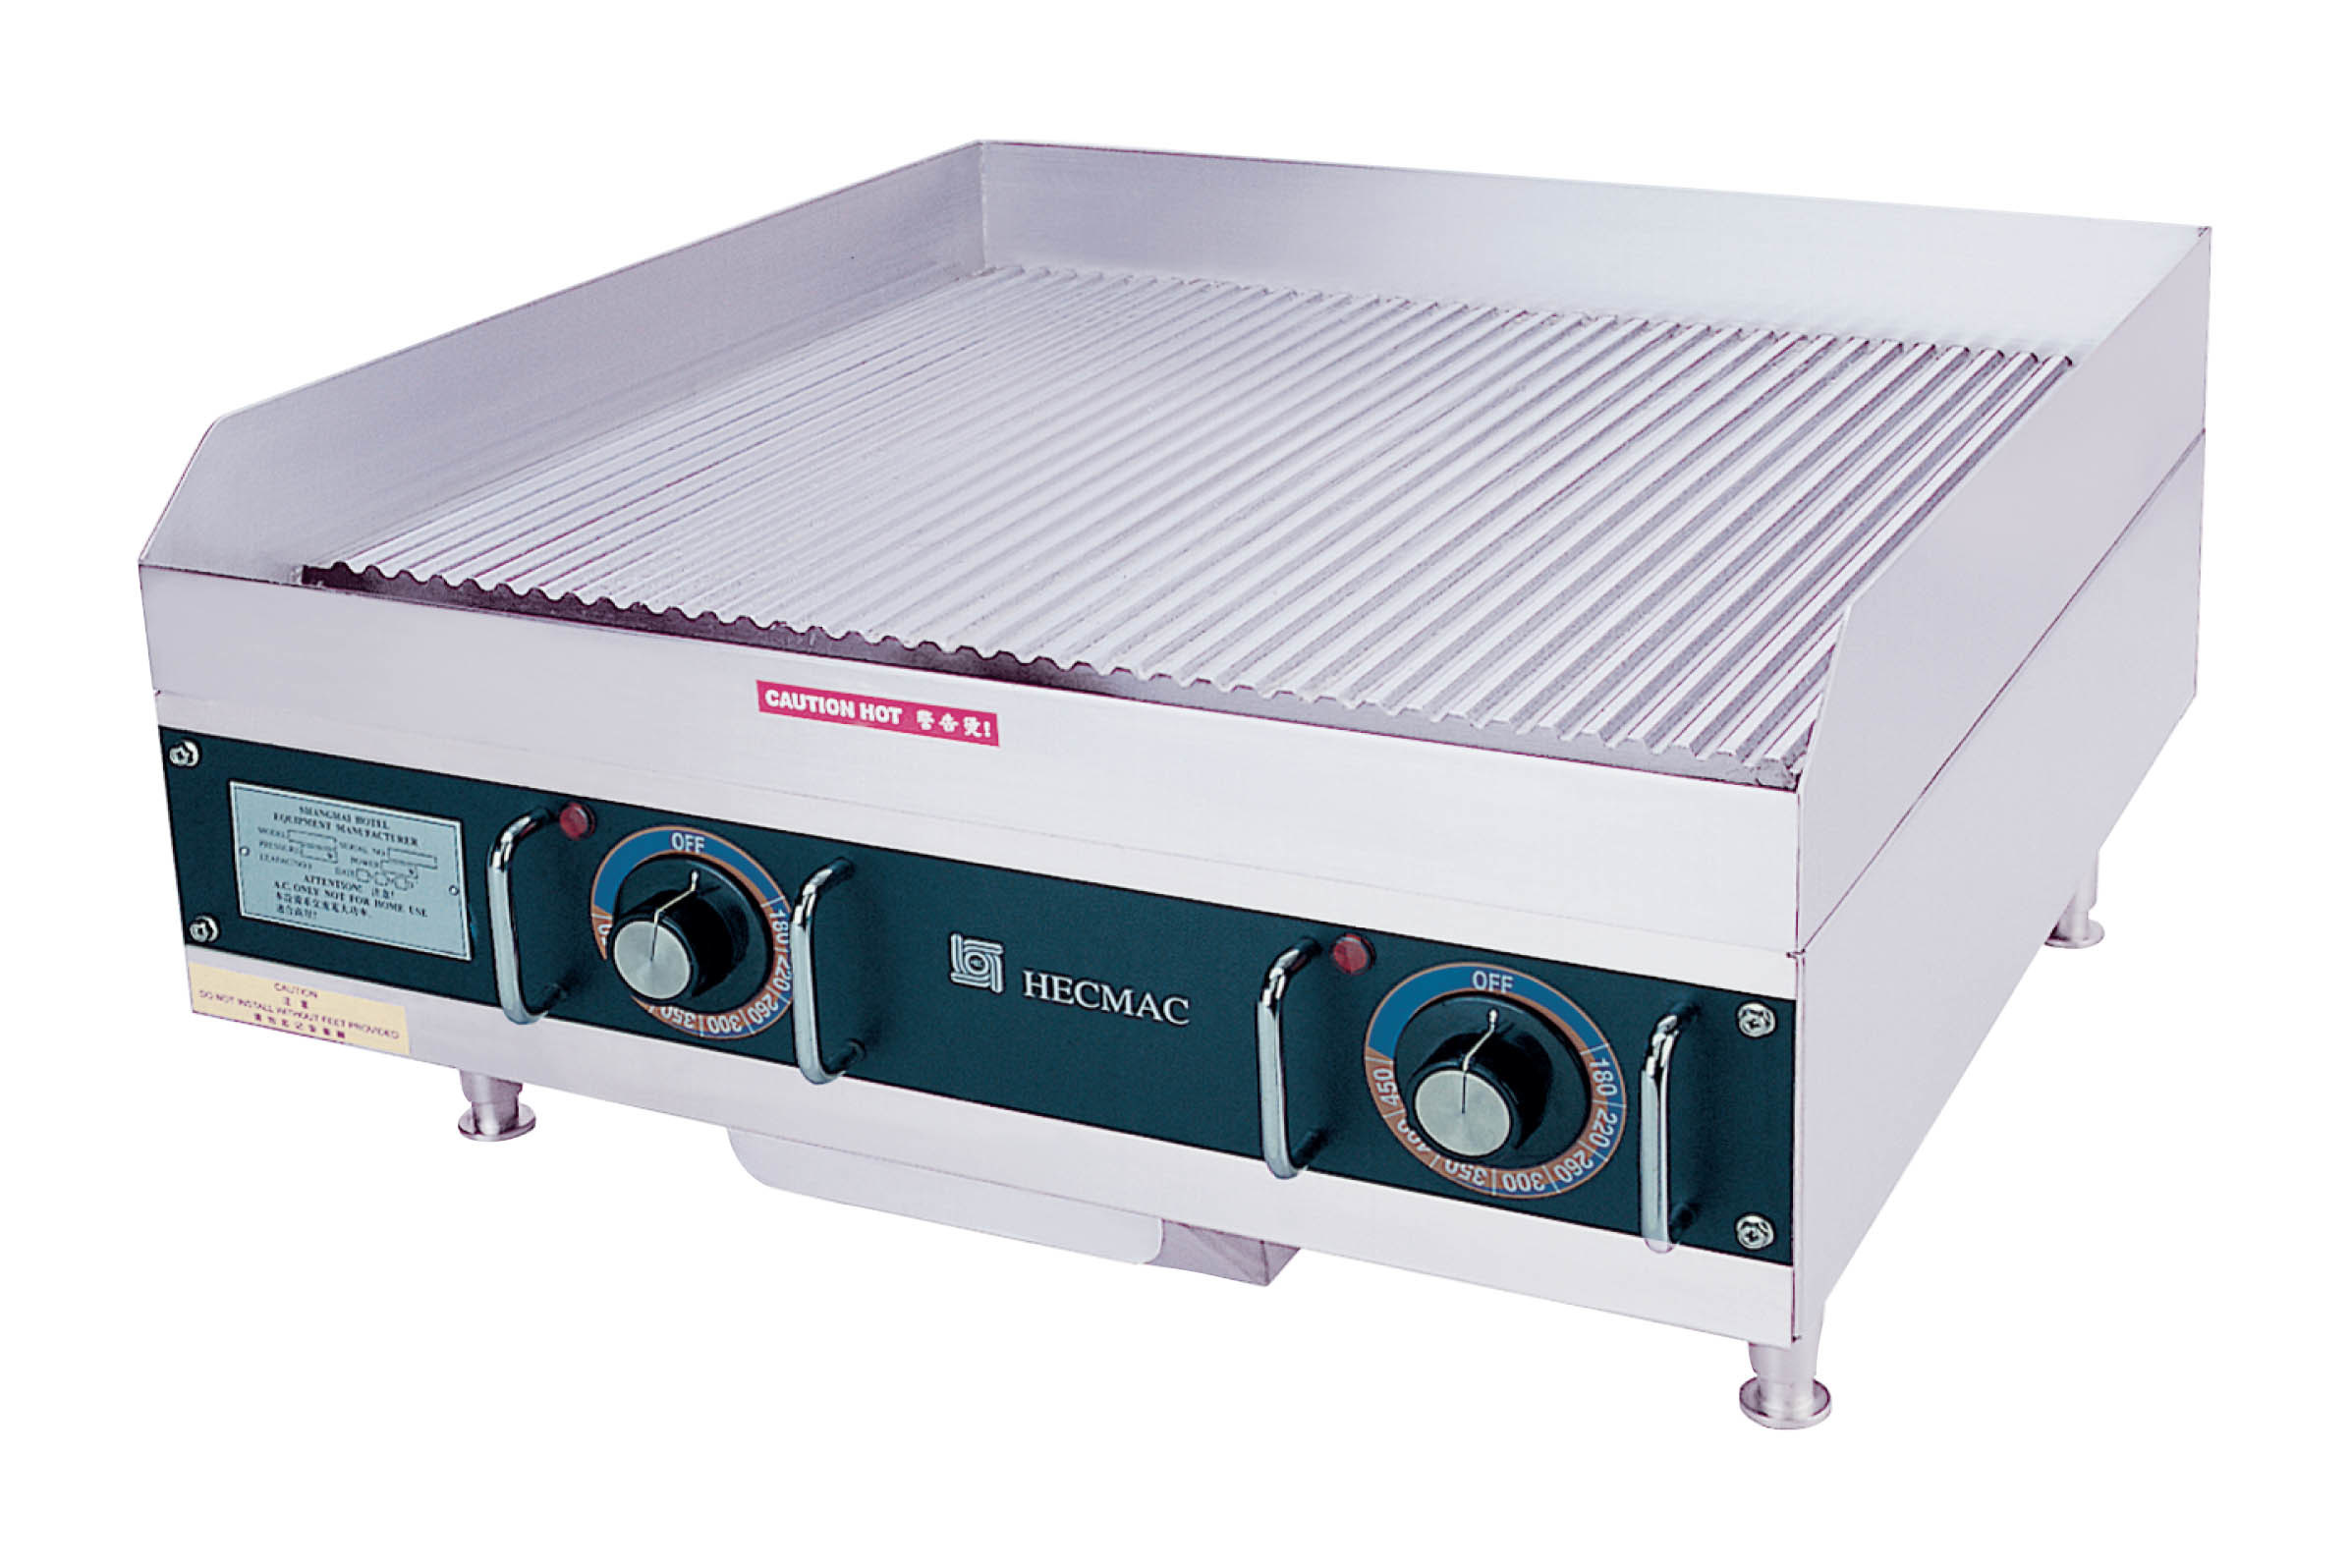 24 in Commercial Electric Grooved Griddle---Stainless Steel (FEHCC216)